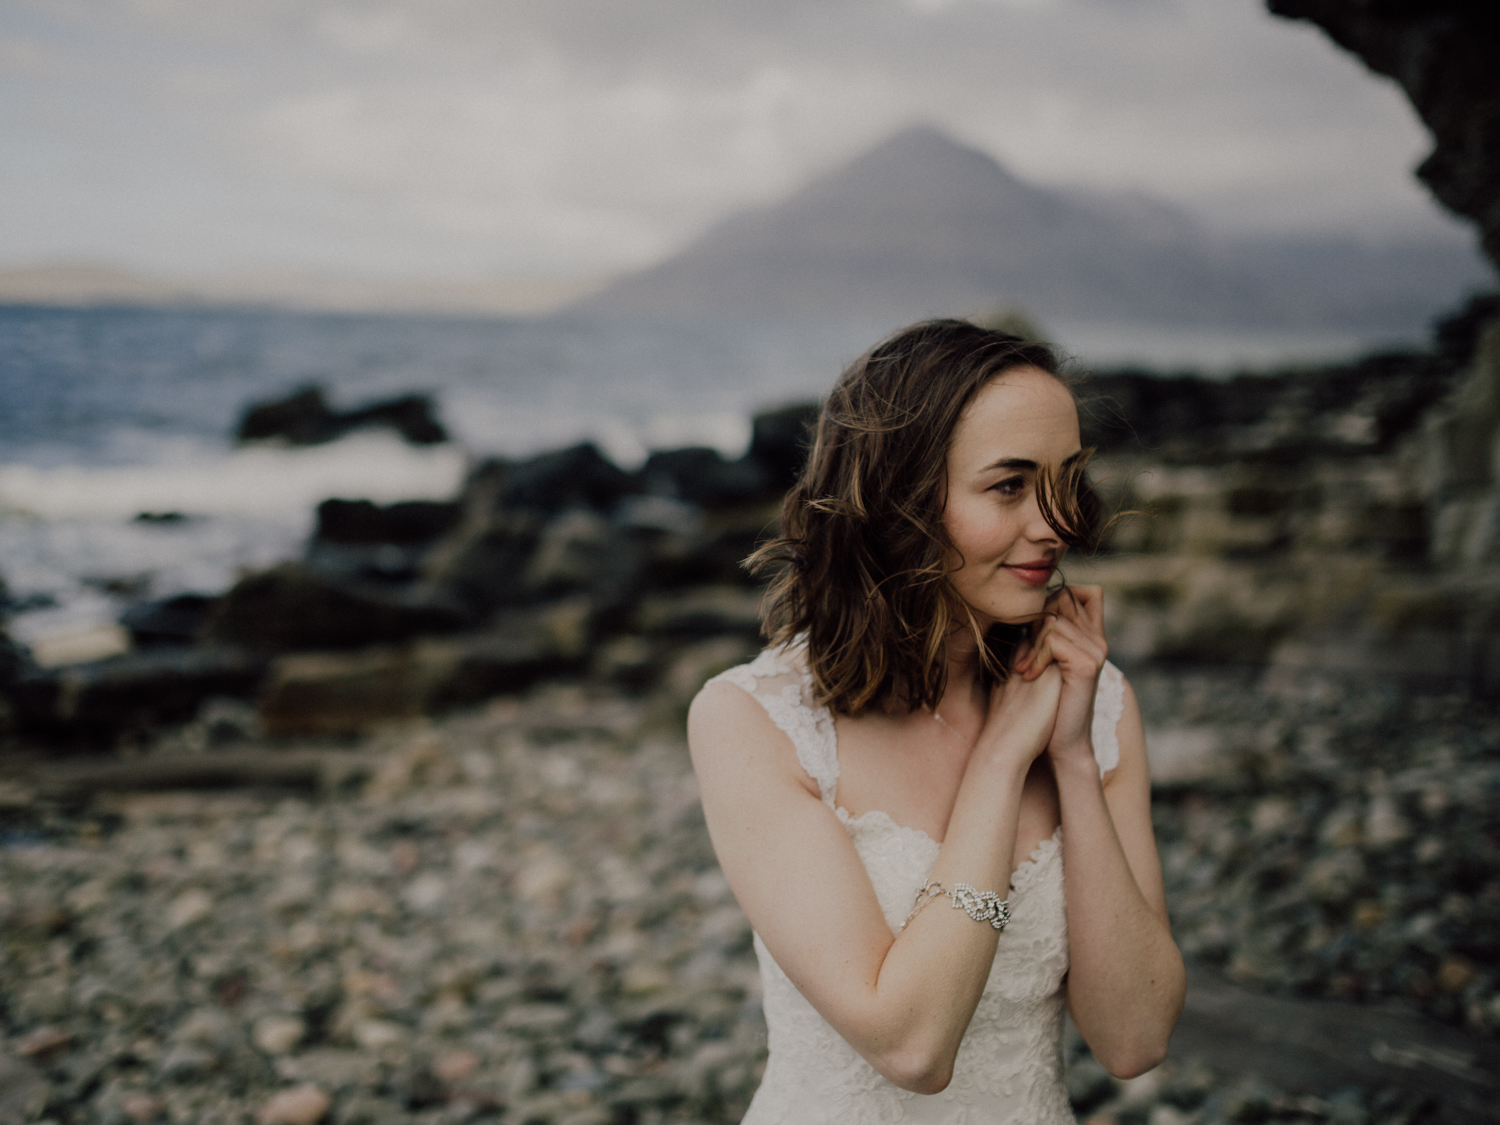 capyture-wedding-photographer-destination-elopement-isle-skye-scotland-148